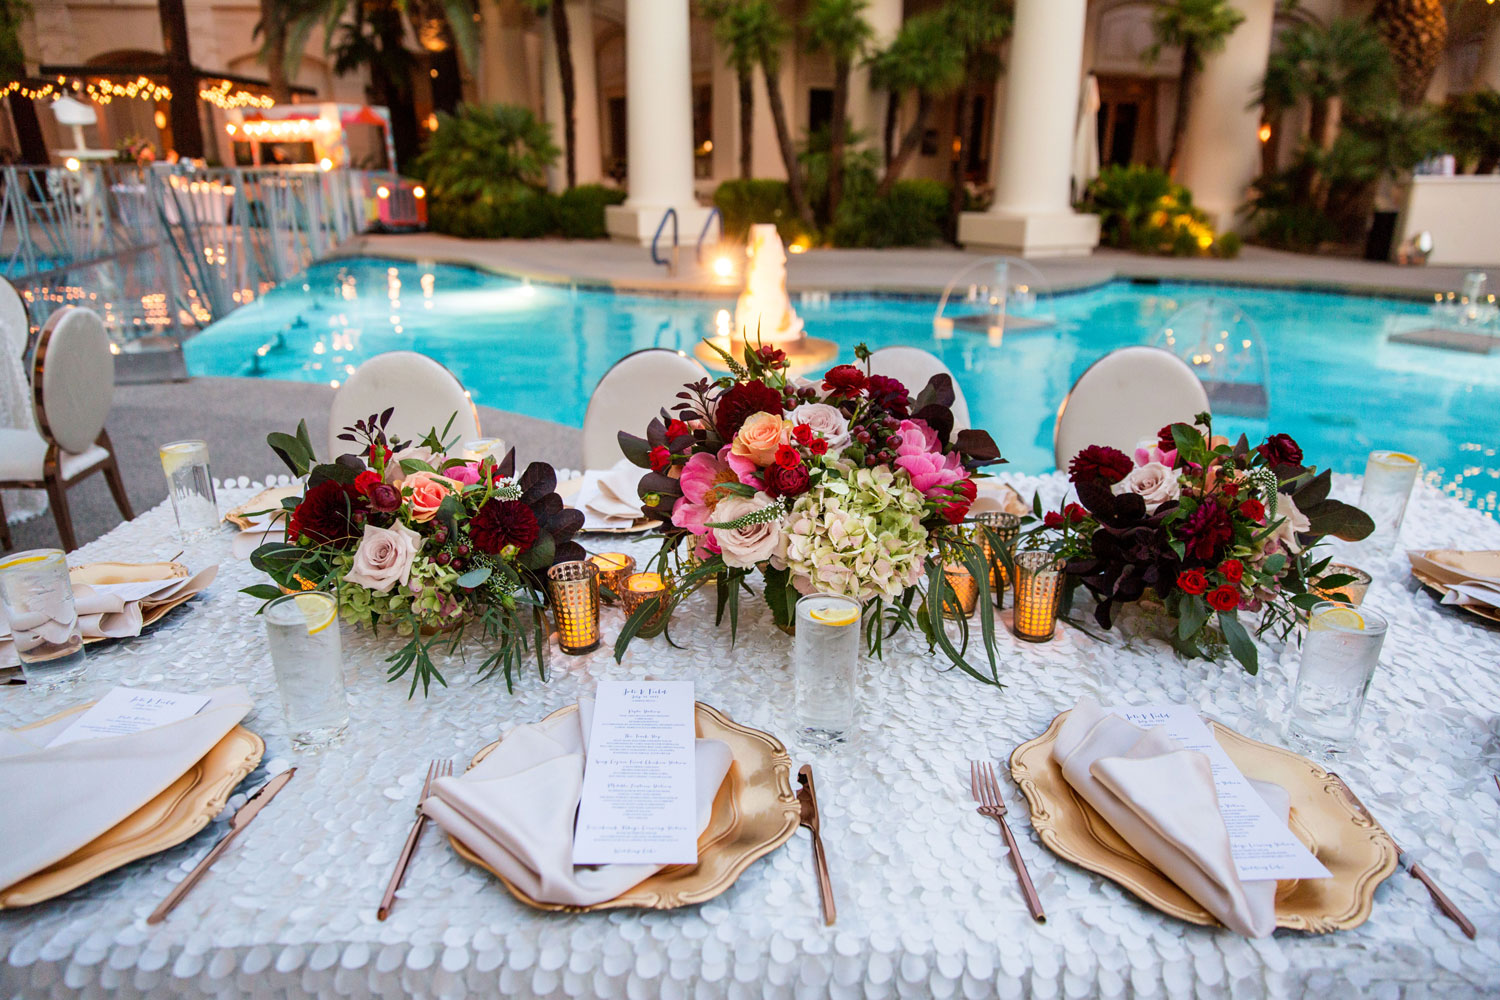 Las Vegas wedding reception by pool andrea eppolito events